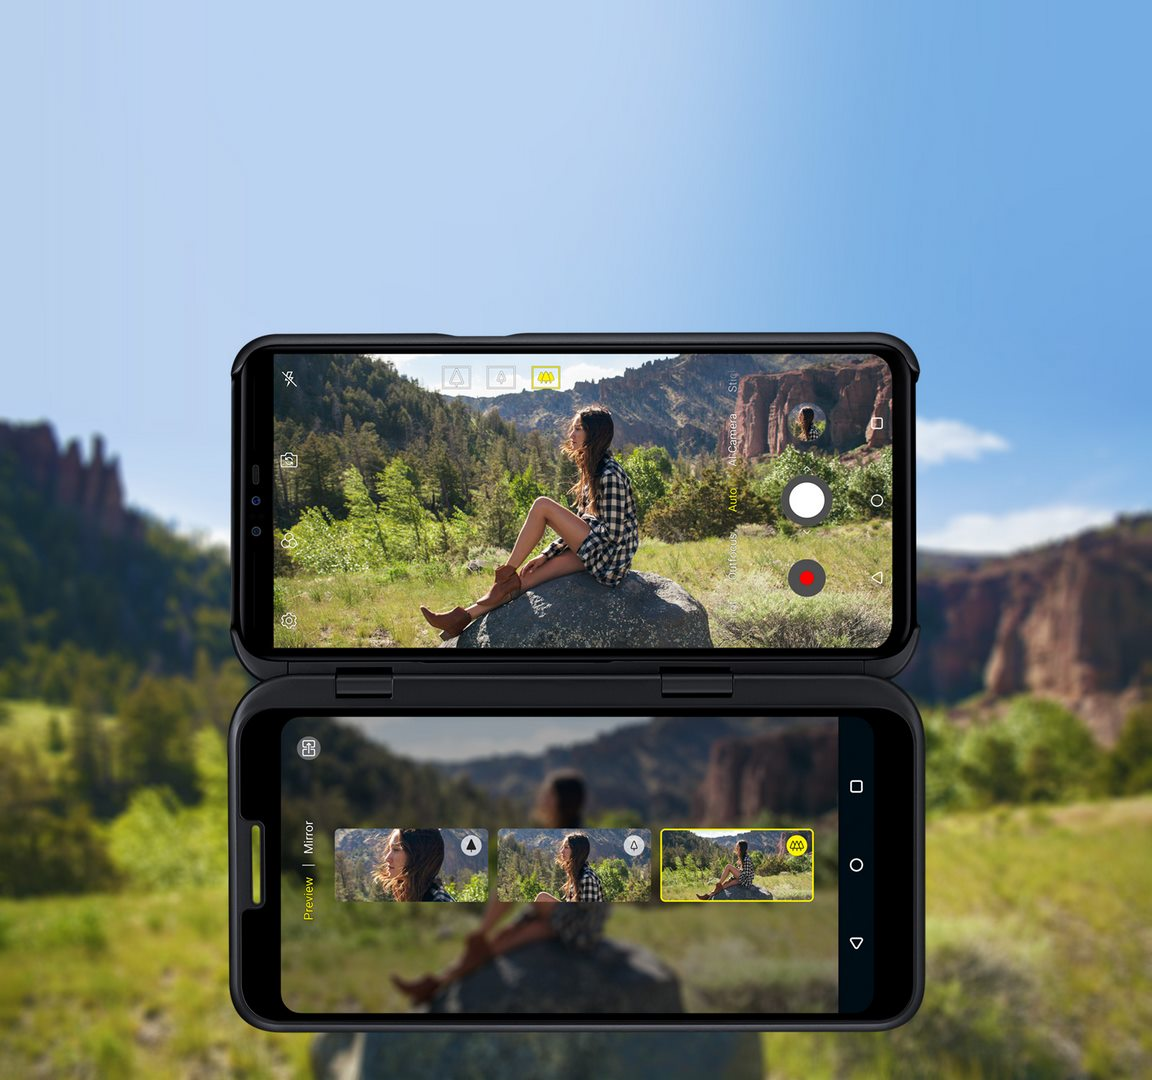 LG-V50-THINQ-DUAL-SCREEN-BANNER - Find your best angle